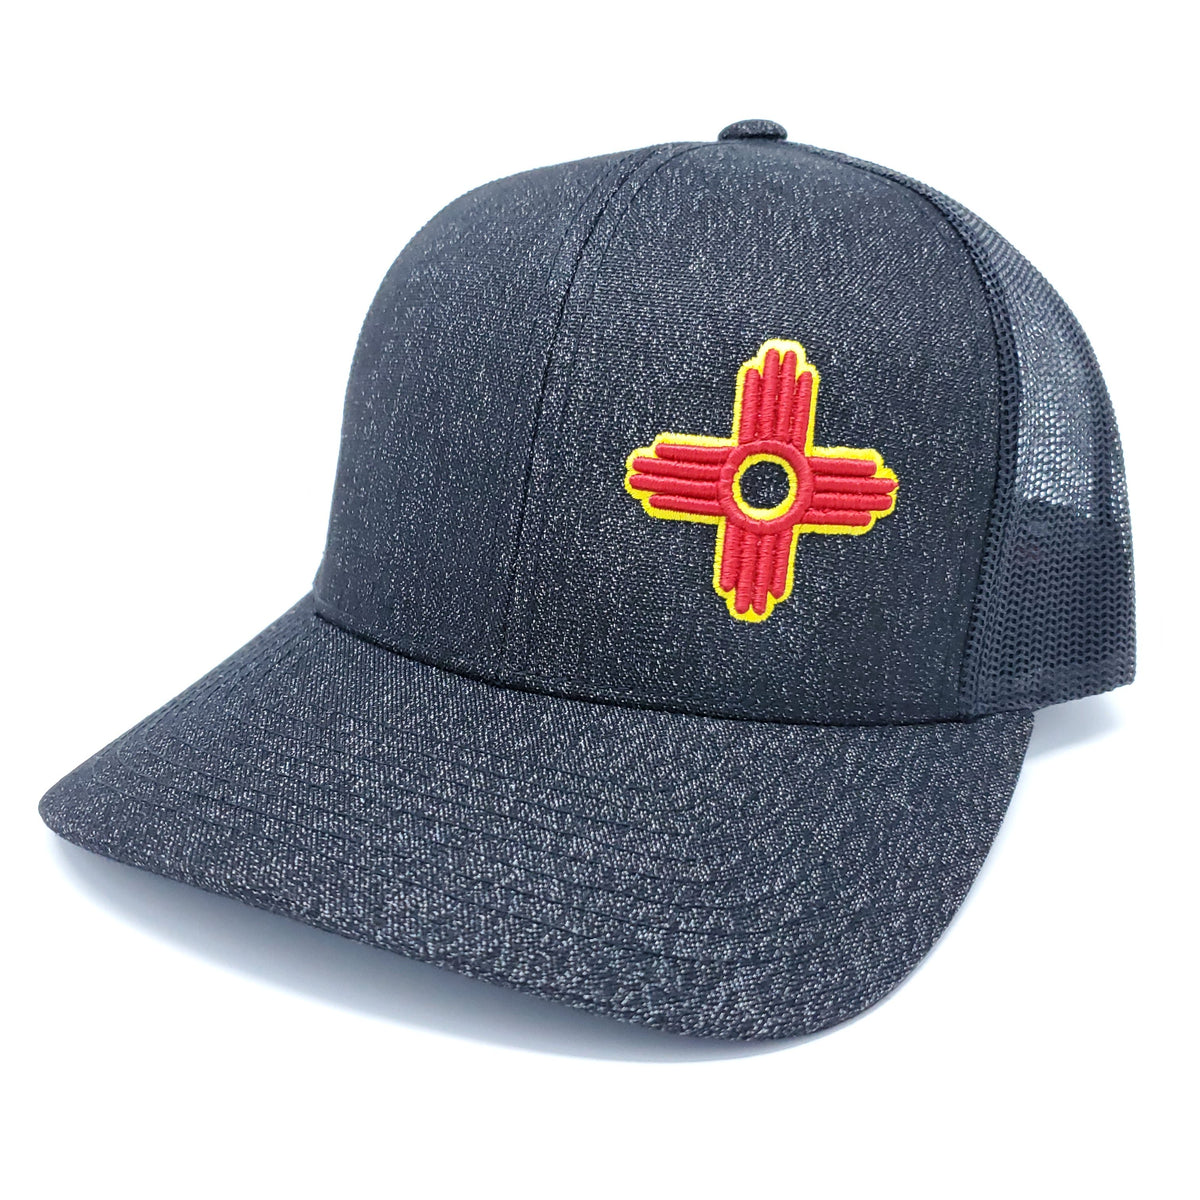 Black Heather Trucker Style Snapback with Embroidered Zia Symbol - Ragged Apparel Screen Printing and Signs - www.nmshirts.com